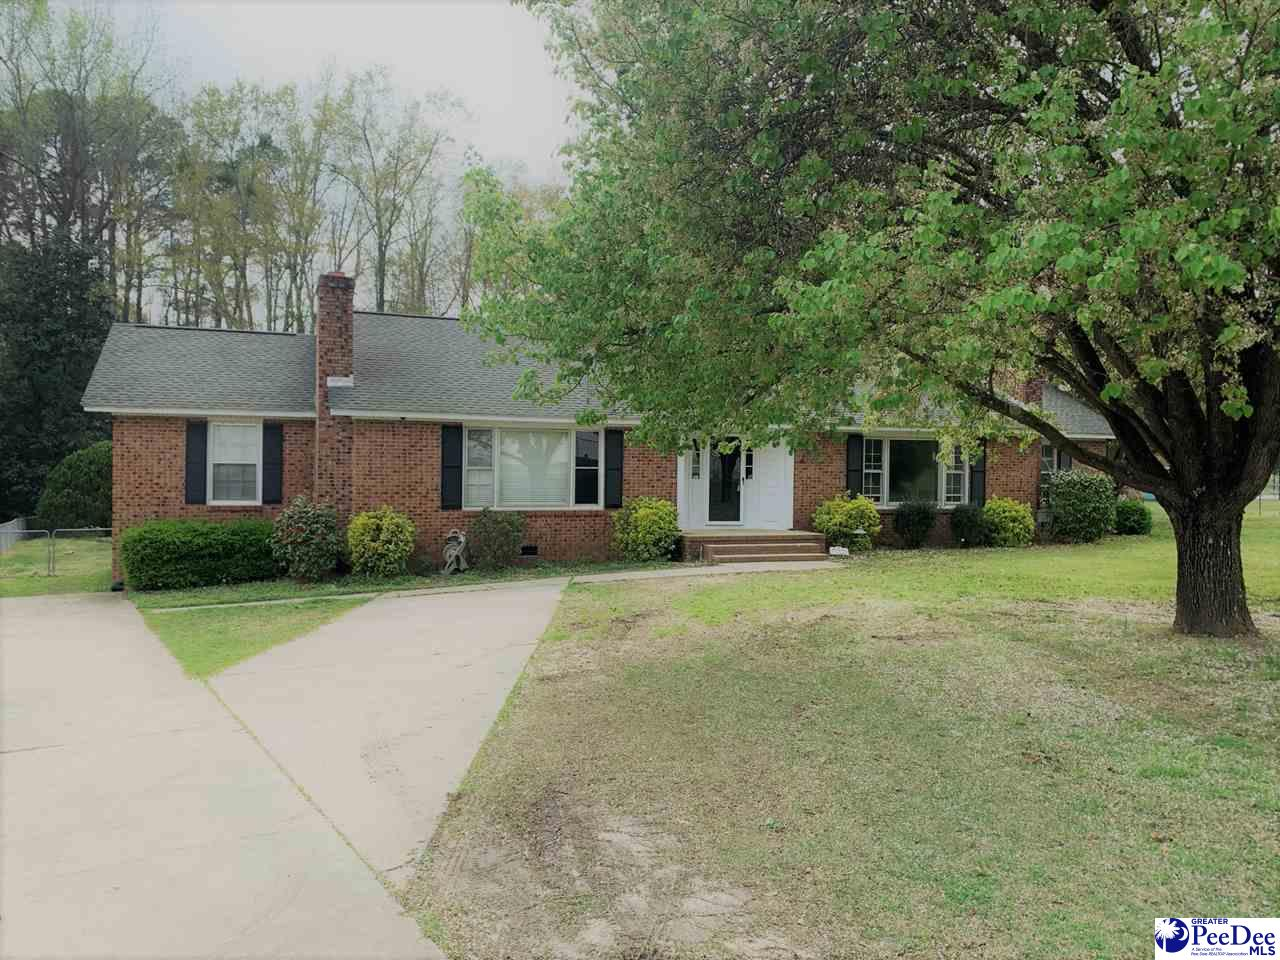 Move in ready ranch style four bedroom brick home located in established neighborhood.  This home has been completely renovated with new laminate flooring throughout.  Fenced in back yard and covered patio area. Kitchen has two pantries for extra storage. Call today to view this home!